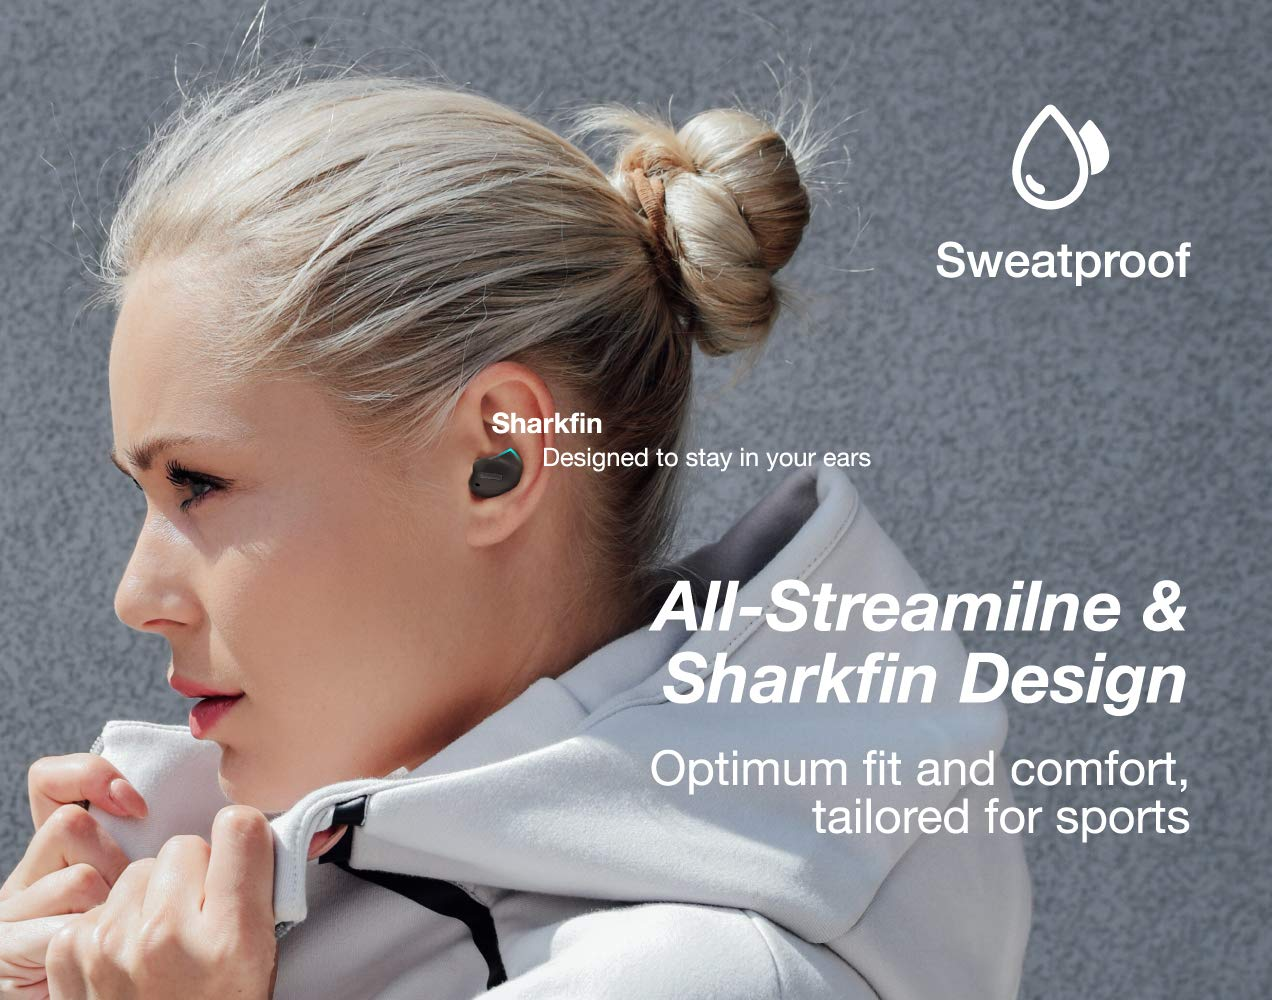 Wireless-Earbuds-GoNovate-Airo-True-Wireless-Headphones-Bluetooth-50-Earbuds-36-Hour-Playtime-Deep-Bass-Stereo-Sound-Support-Binaural-Call-with-CVC-Noise-Cancelling-Waterproof-with-Charging-Case